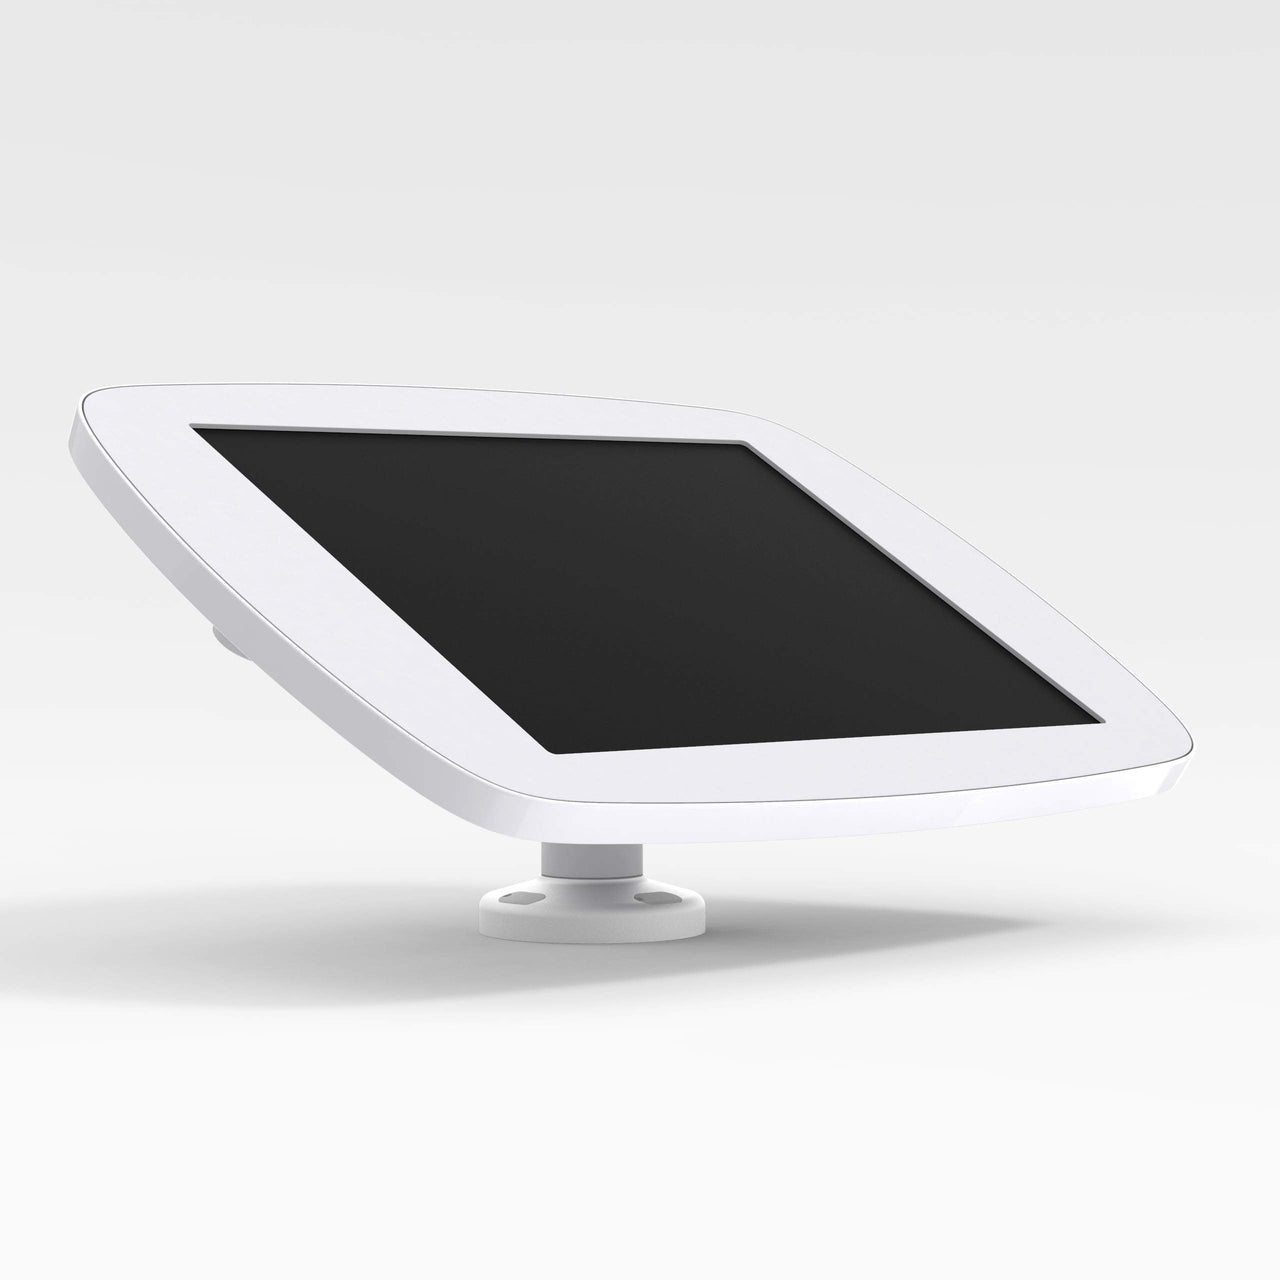 Bouncepad Swivel Desk - A secure rotating tablet & iPad desk mount in white.